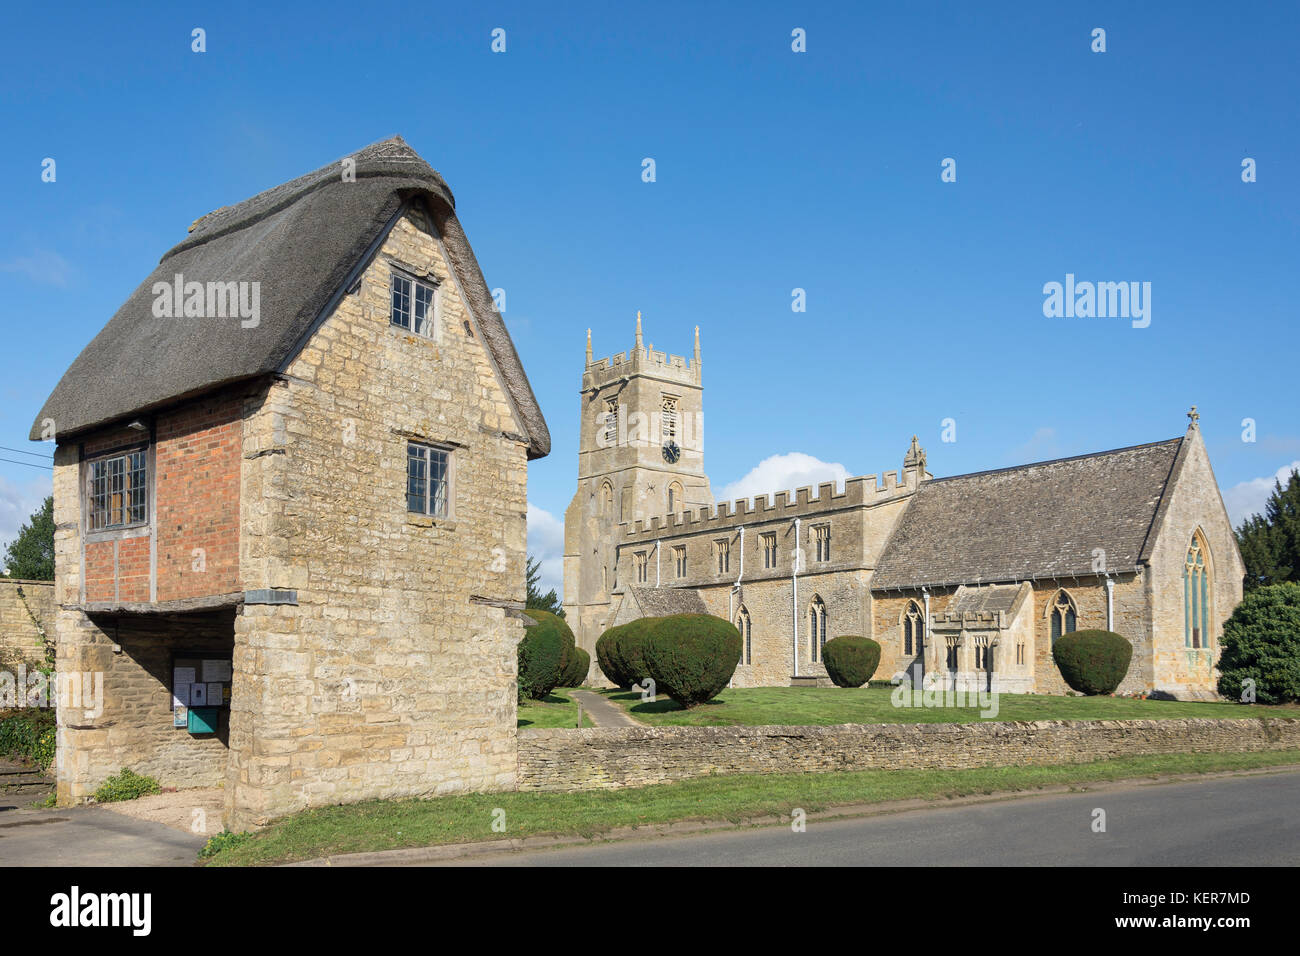 St Peter & St Paul Church showing The Lych Gate, Main Street, Long Compton, Warwickshire, England, United Kingdom - Stock Image